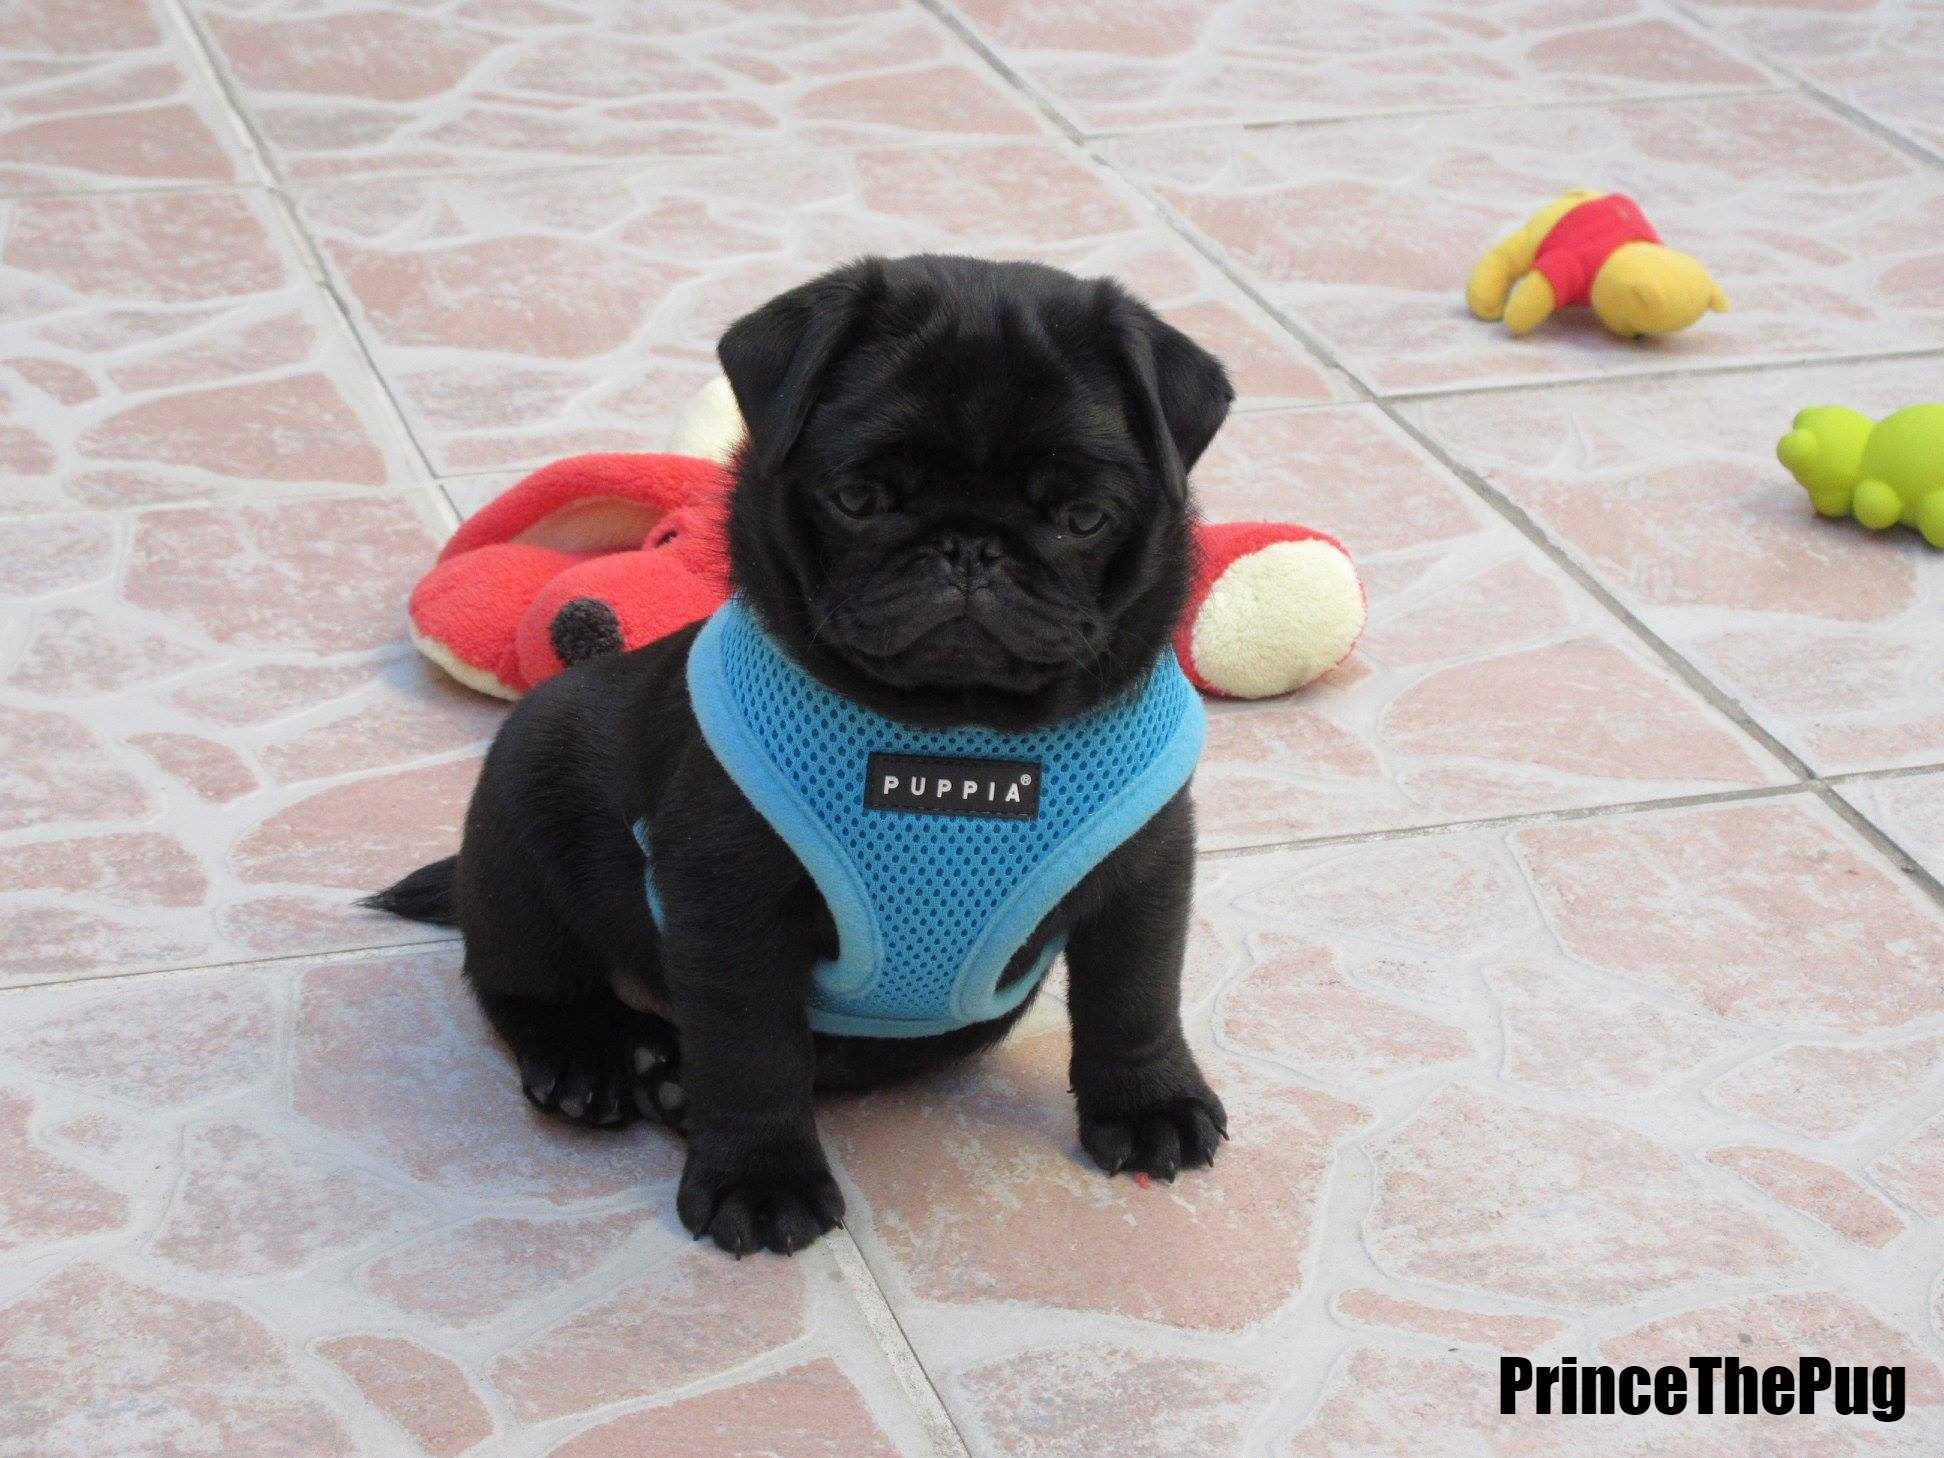 Puppia Blue Soft Harness Available At Www Ilovepugs Co Uk Sizes S